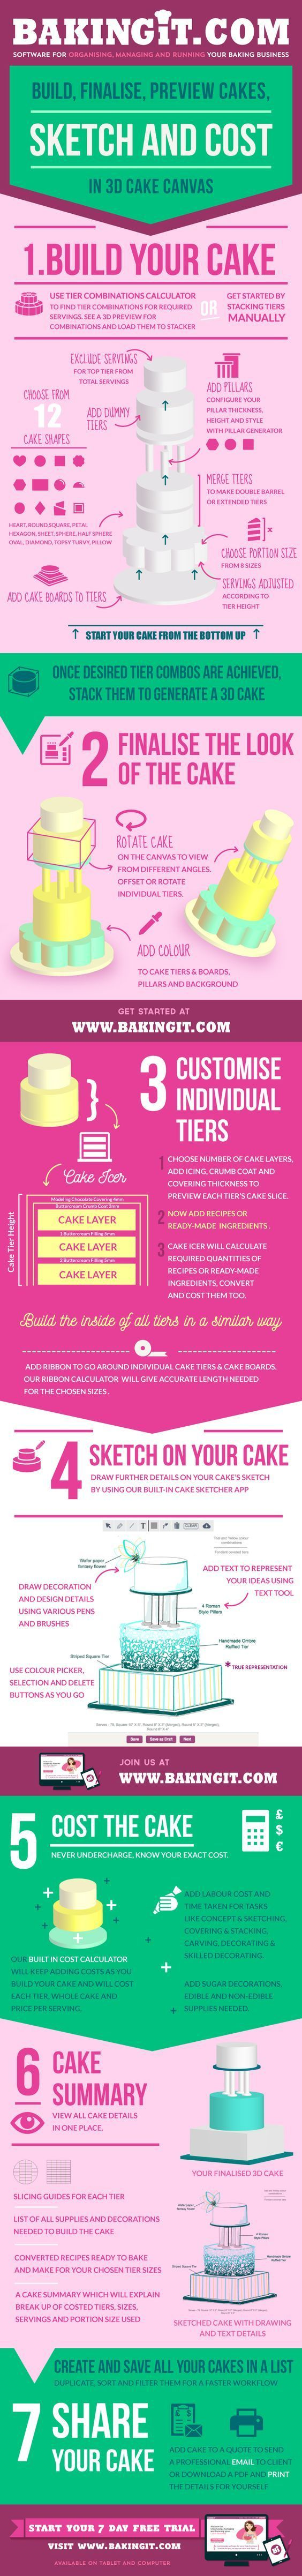 Calculate, Design, Sketch and Cost your Cakes from one place! Start your 7 Day FREE trial now at http://www.bakingit.com